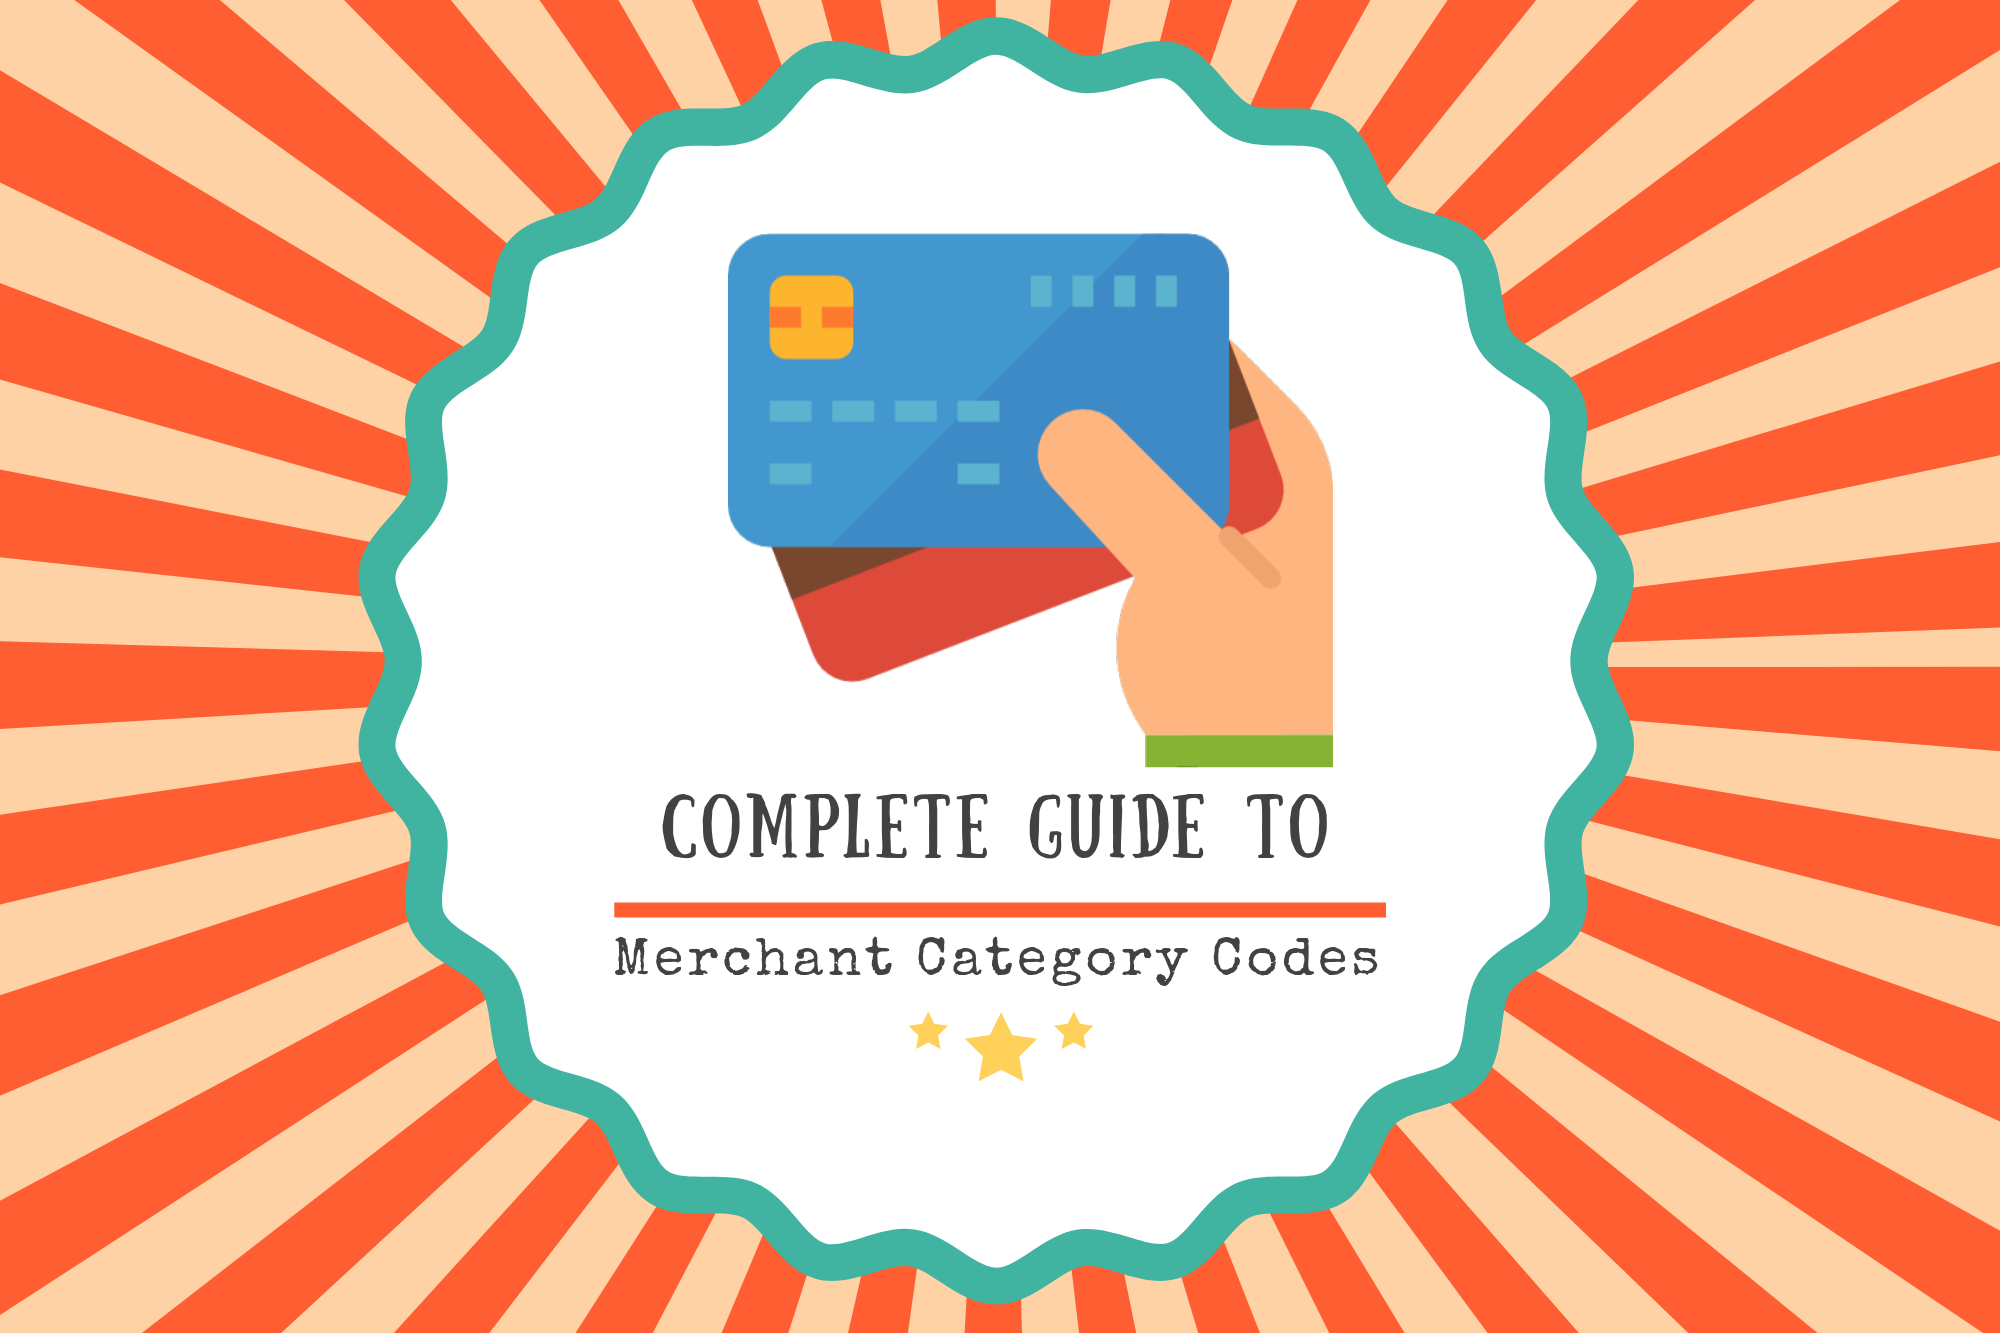 Credit Card Merchant Category Codes (MCC): Here's How It